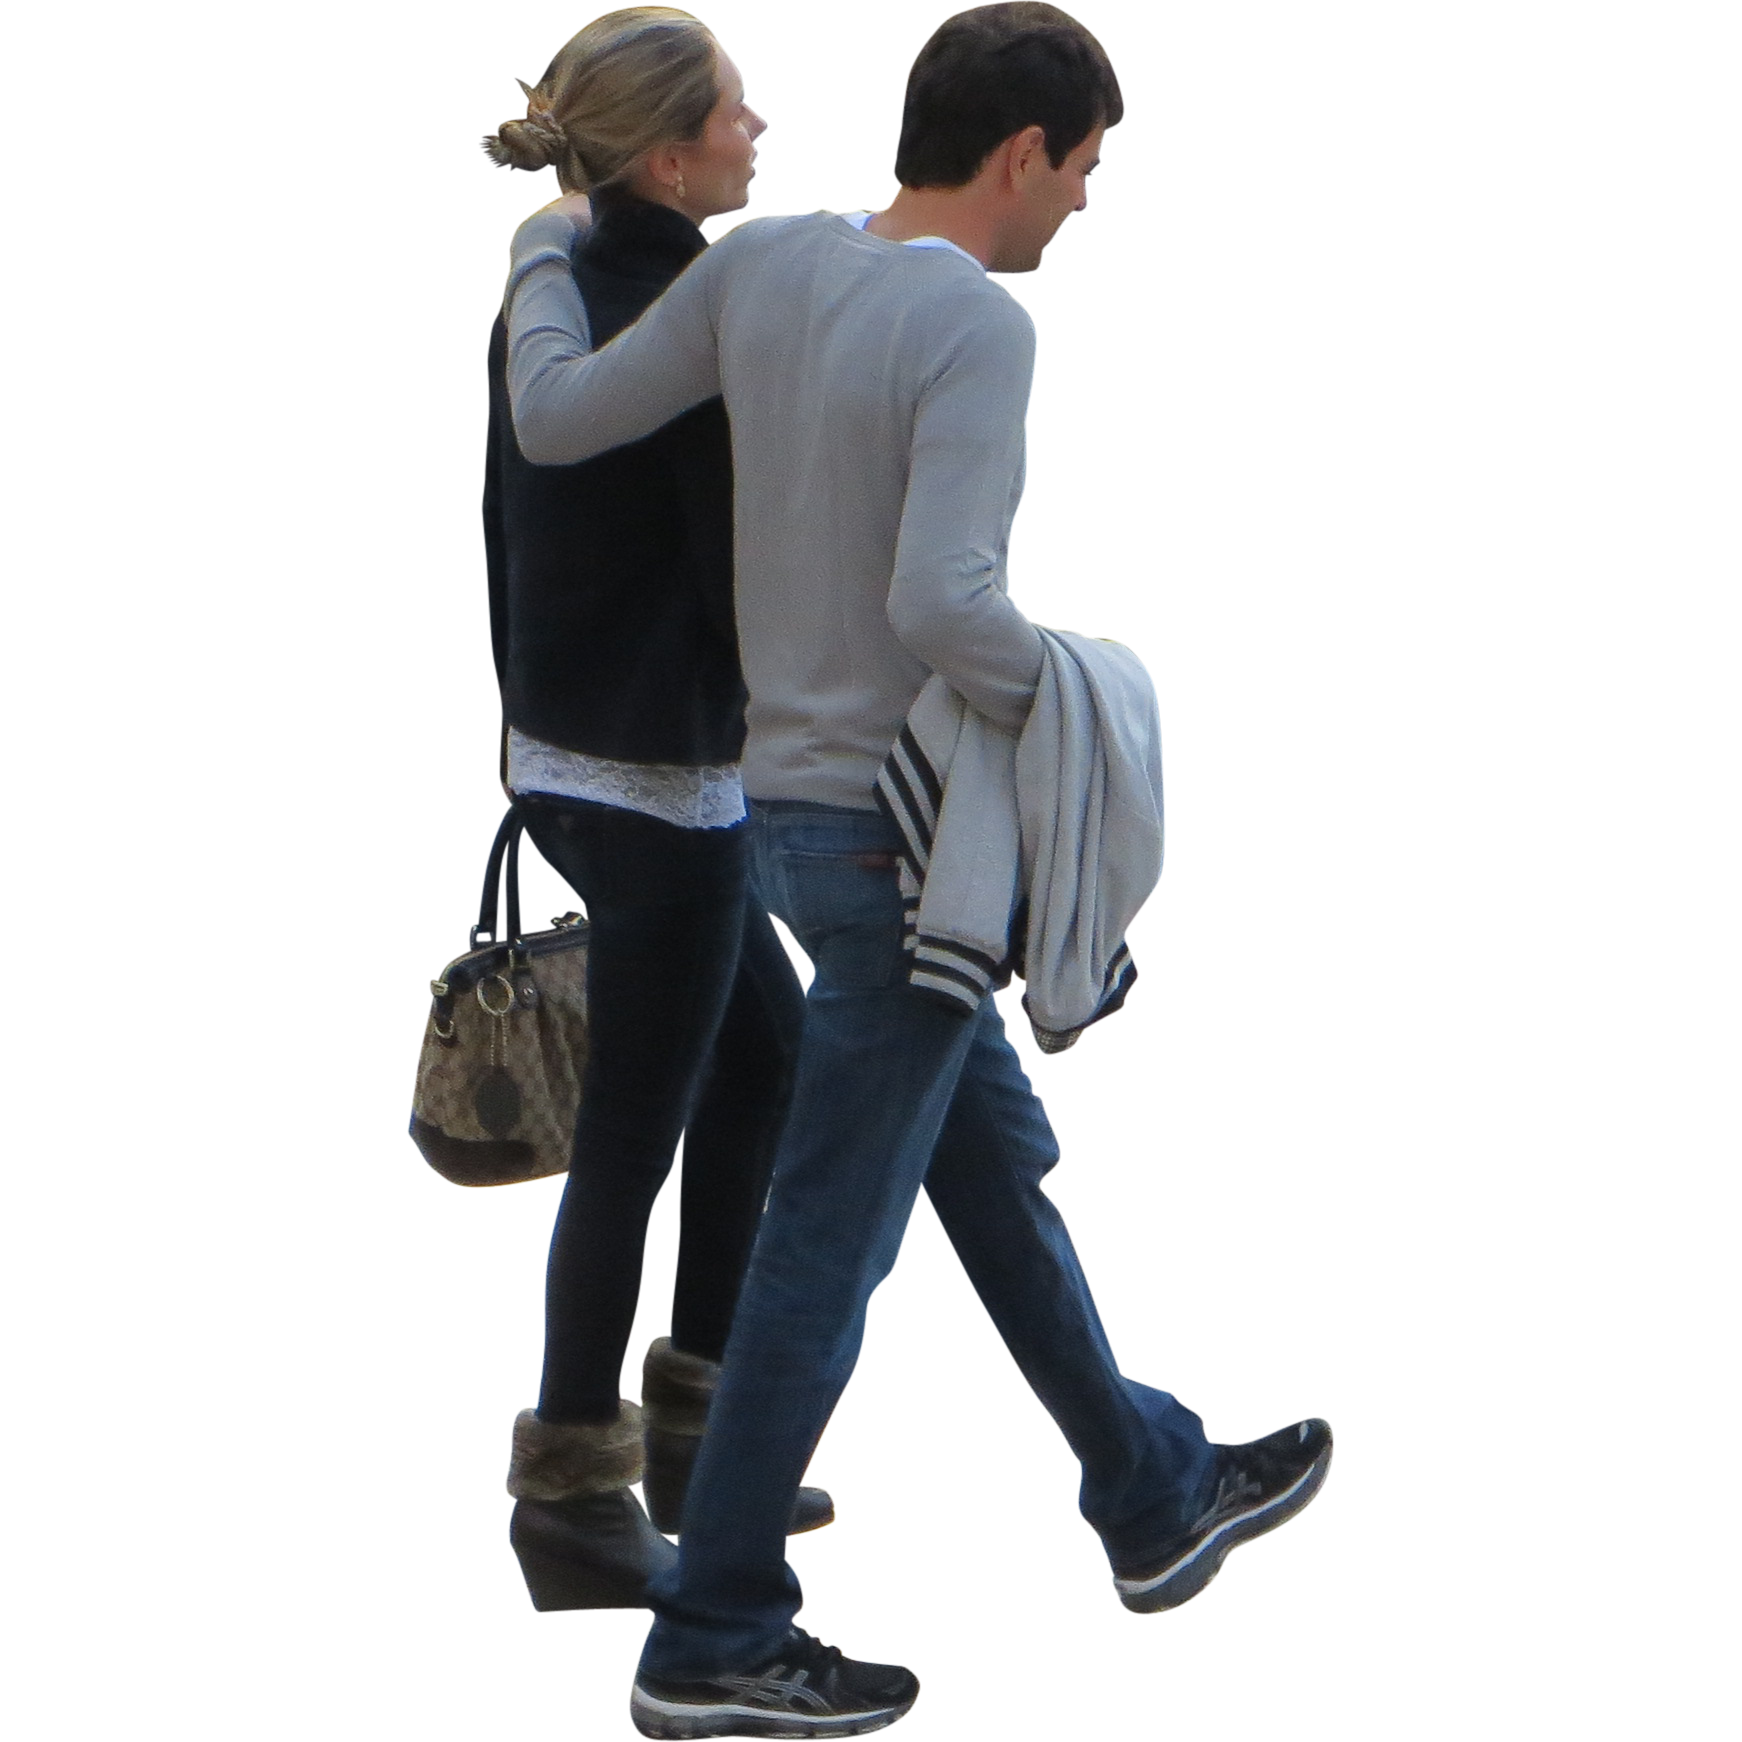 Business people walking away png. Person transparent images pluspng